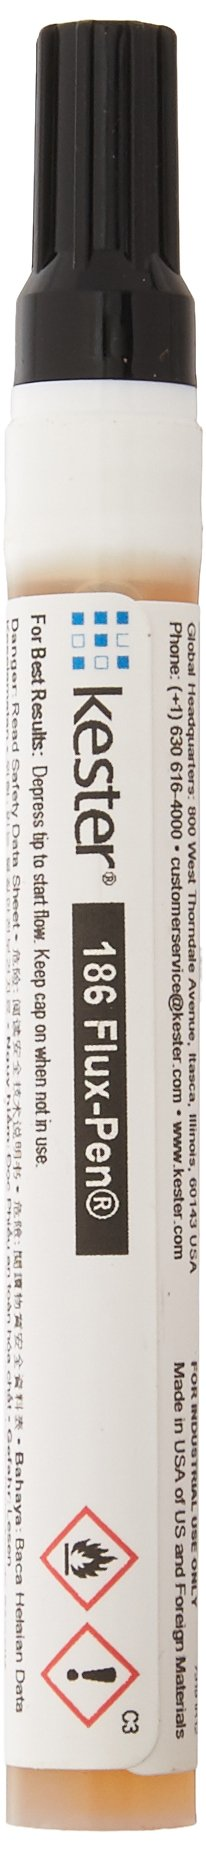 Kester 83-1000-0186 Mildly Activated Rosin Liquid Flux Pen for Lead-Bearing and Lead Free Alloy, 0.33 fl. oz.